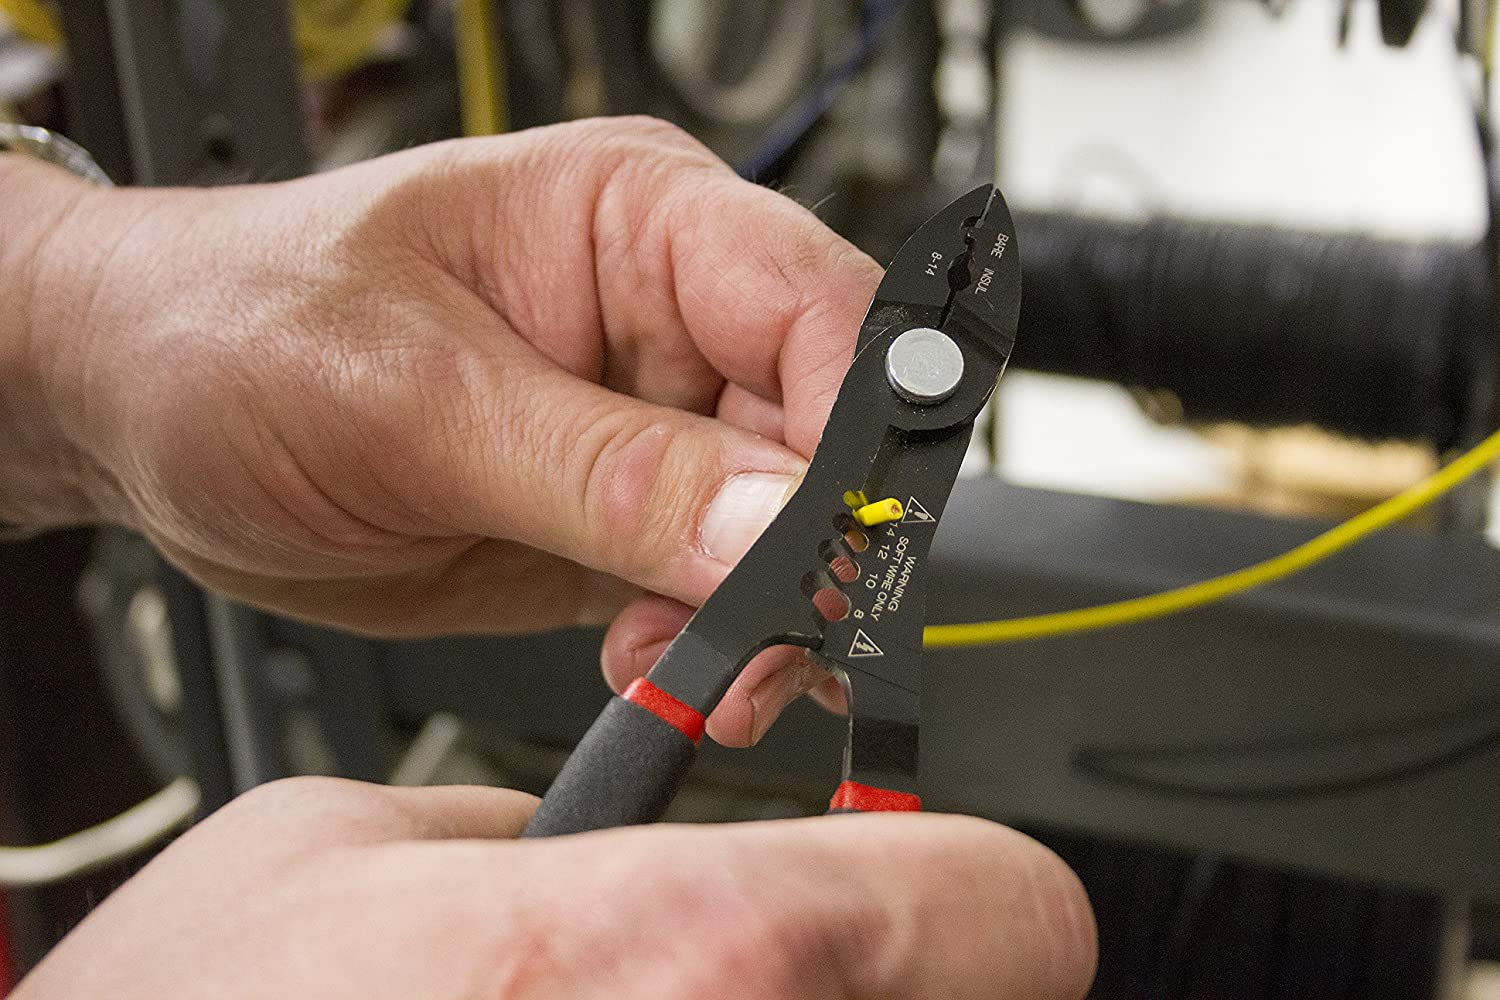 Lisle 68280 8-14 Gauge Compact Multi-Function Wire Stripper